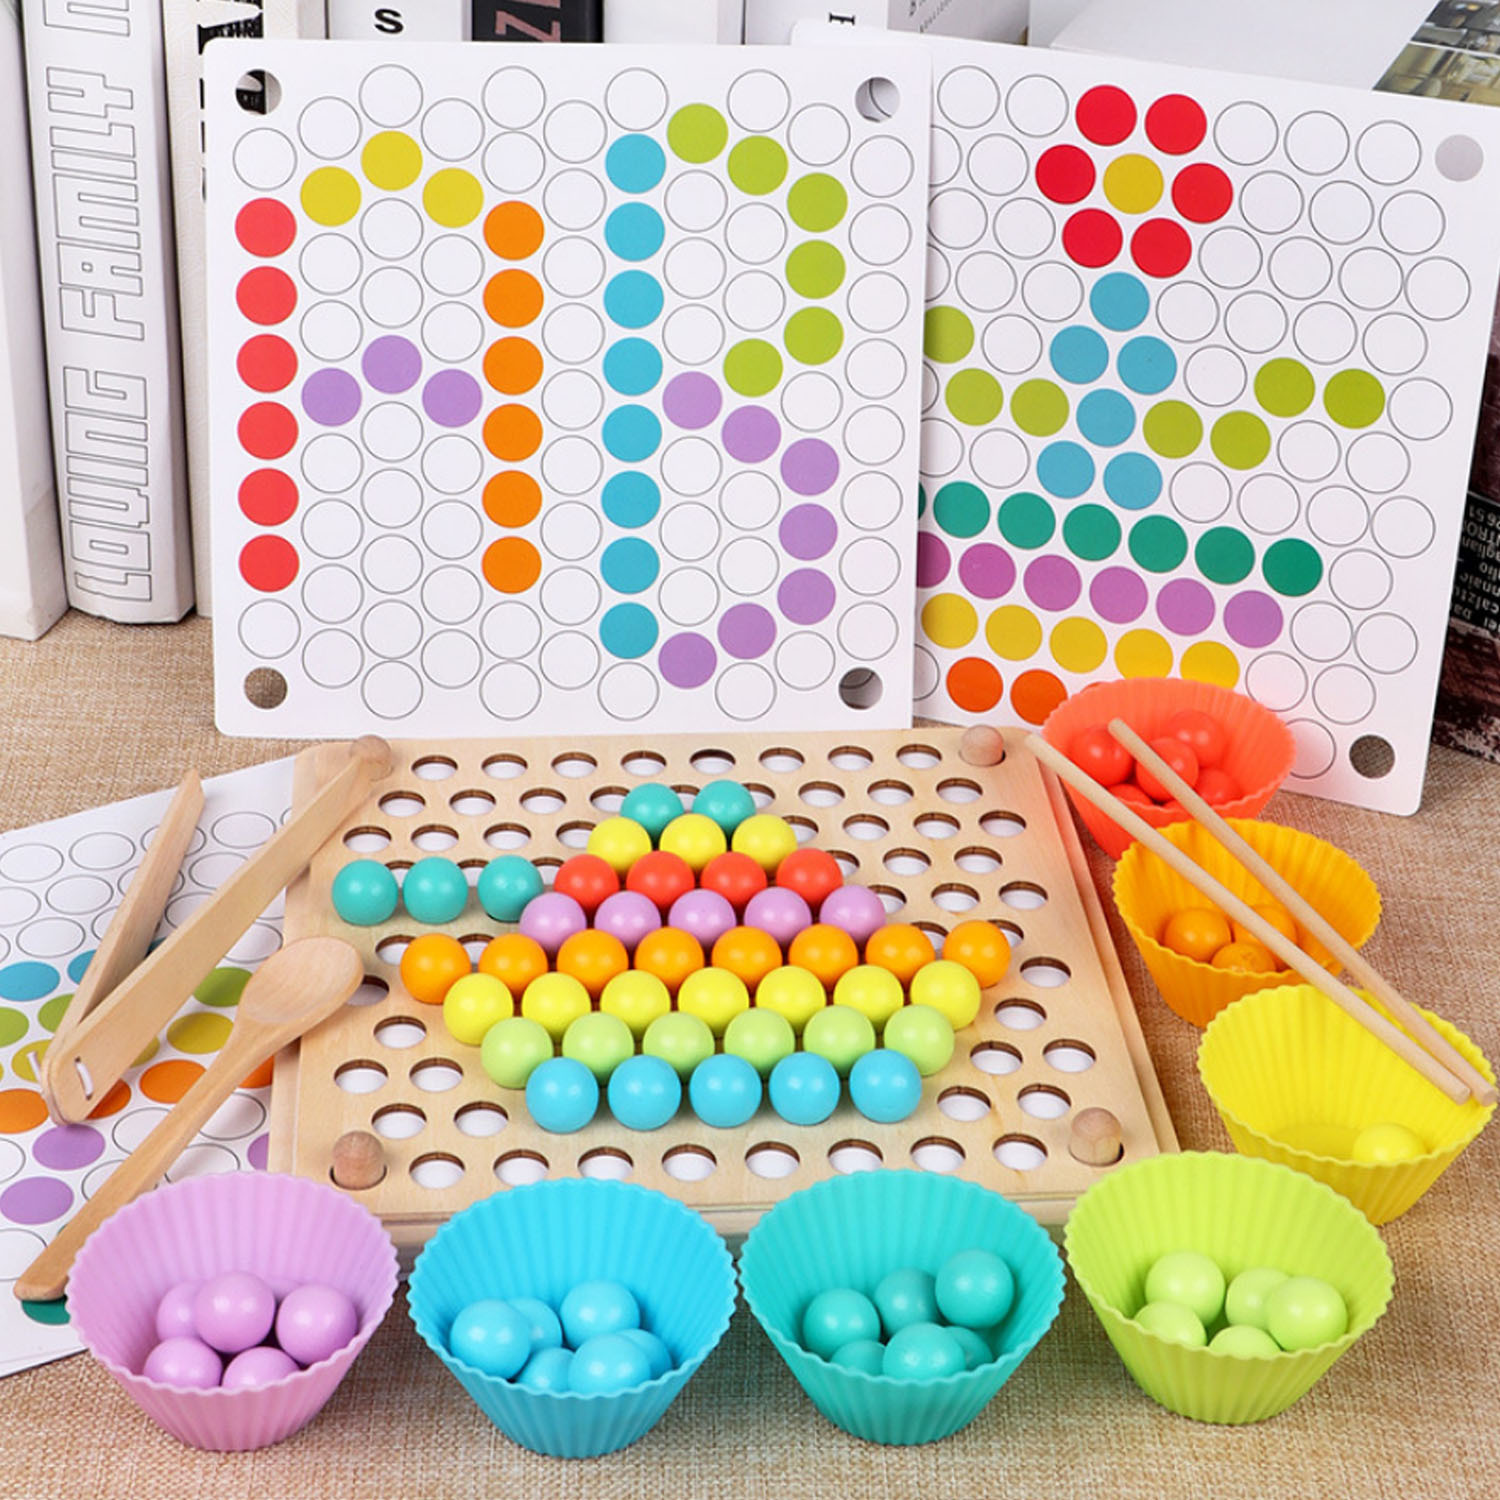 Kids Baby Montessori Wood Clip Claws Rods Rods Puzzles Hands Brain Training Learning Math Game Early Education Toys